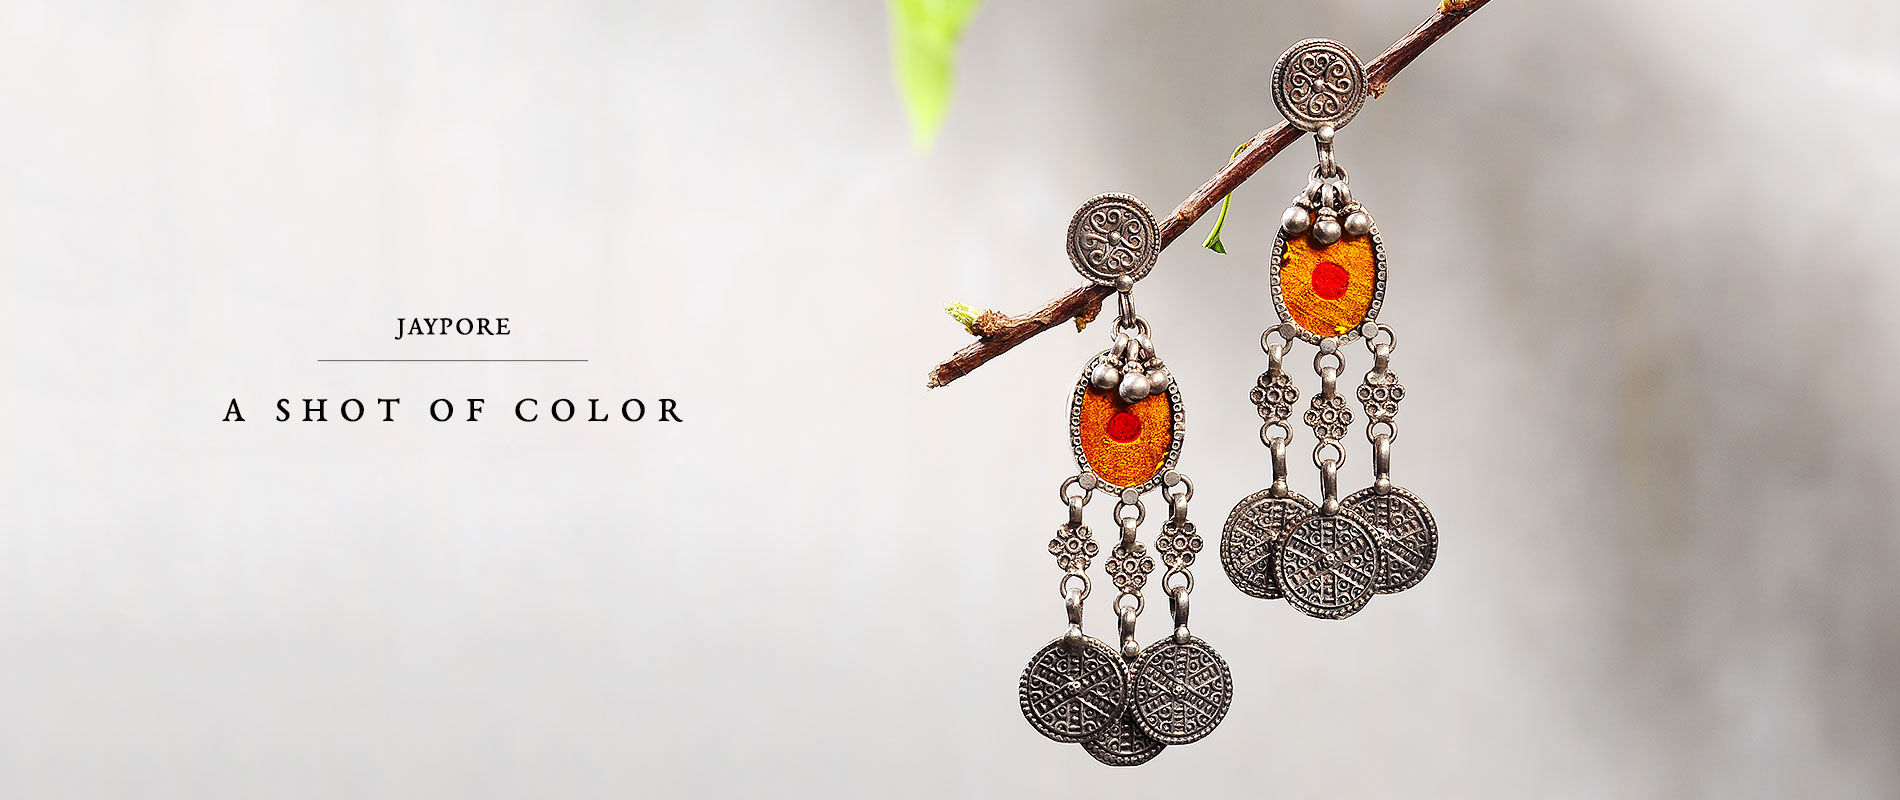 190315CUR070-Yellow Orange Silver Curation_11076